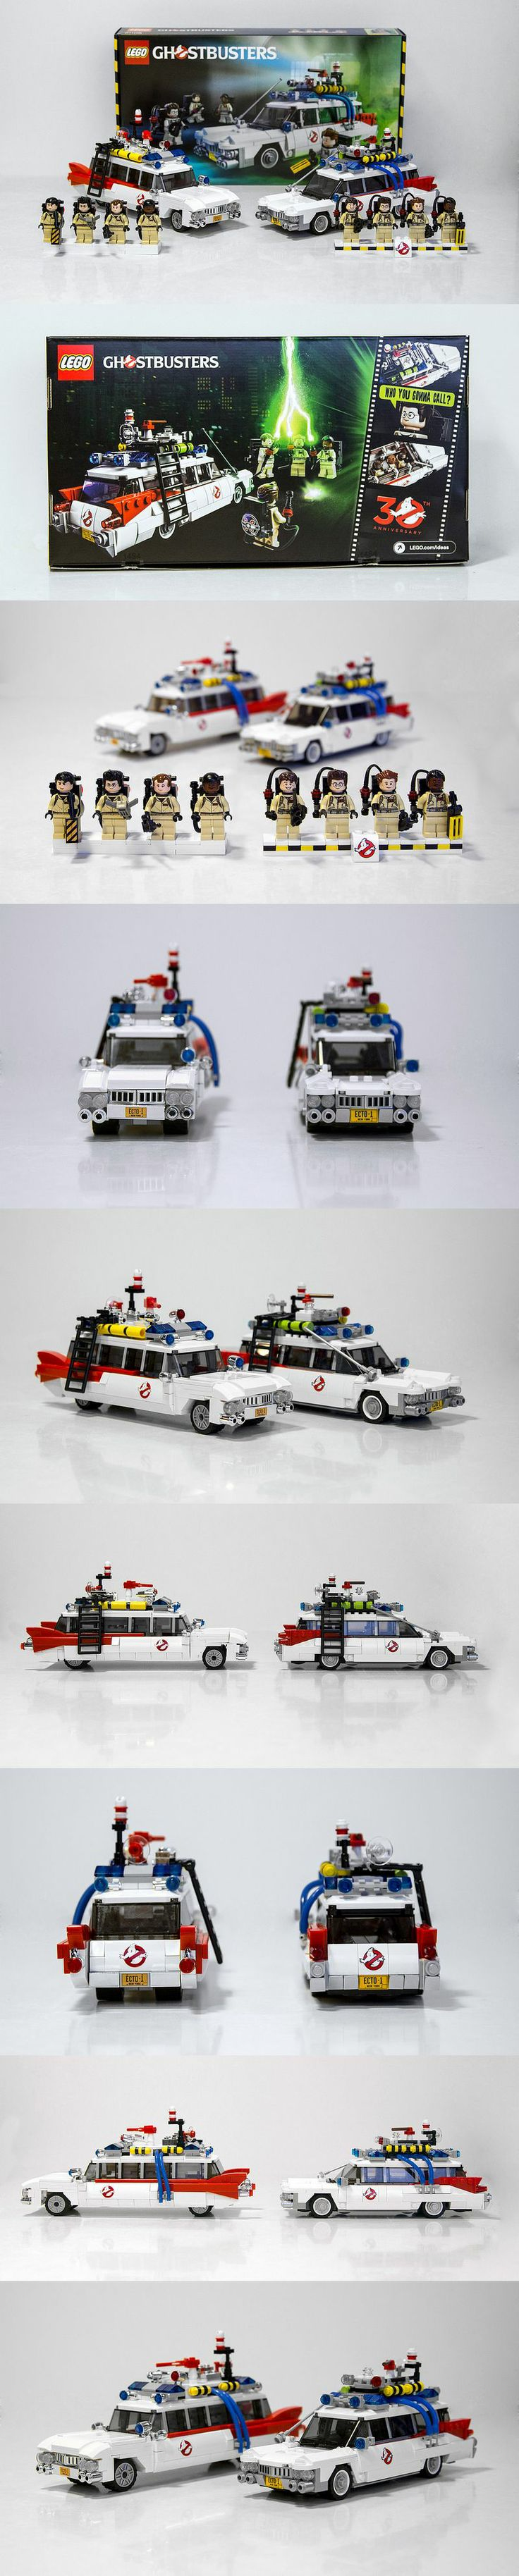 LEGO Ghostbusters comparison: CUUSOOLEGO Ideas submission on the LEFT, Official Set on the RIGHT!